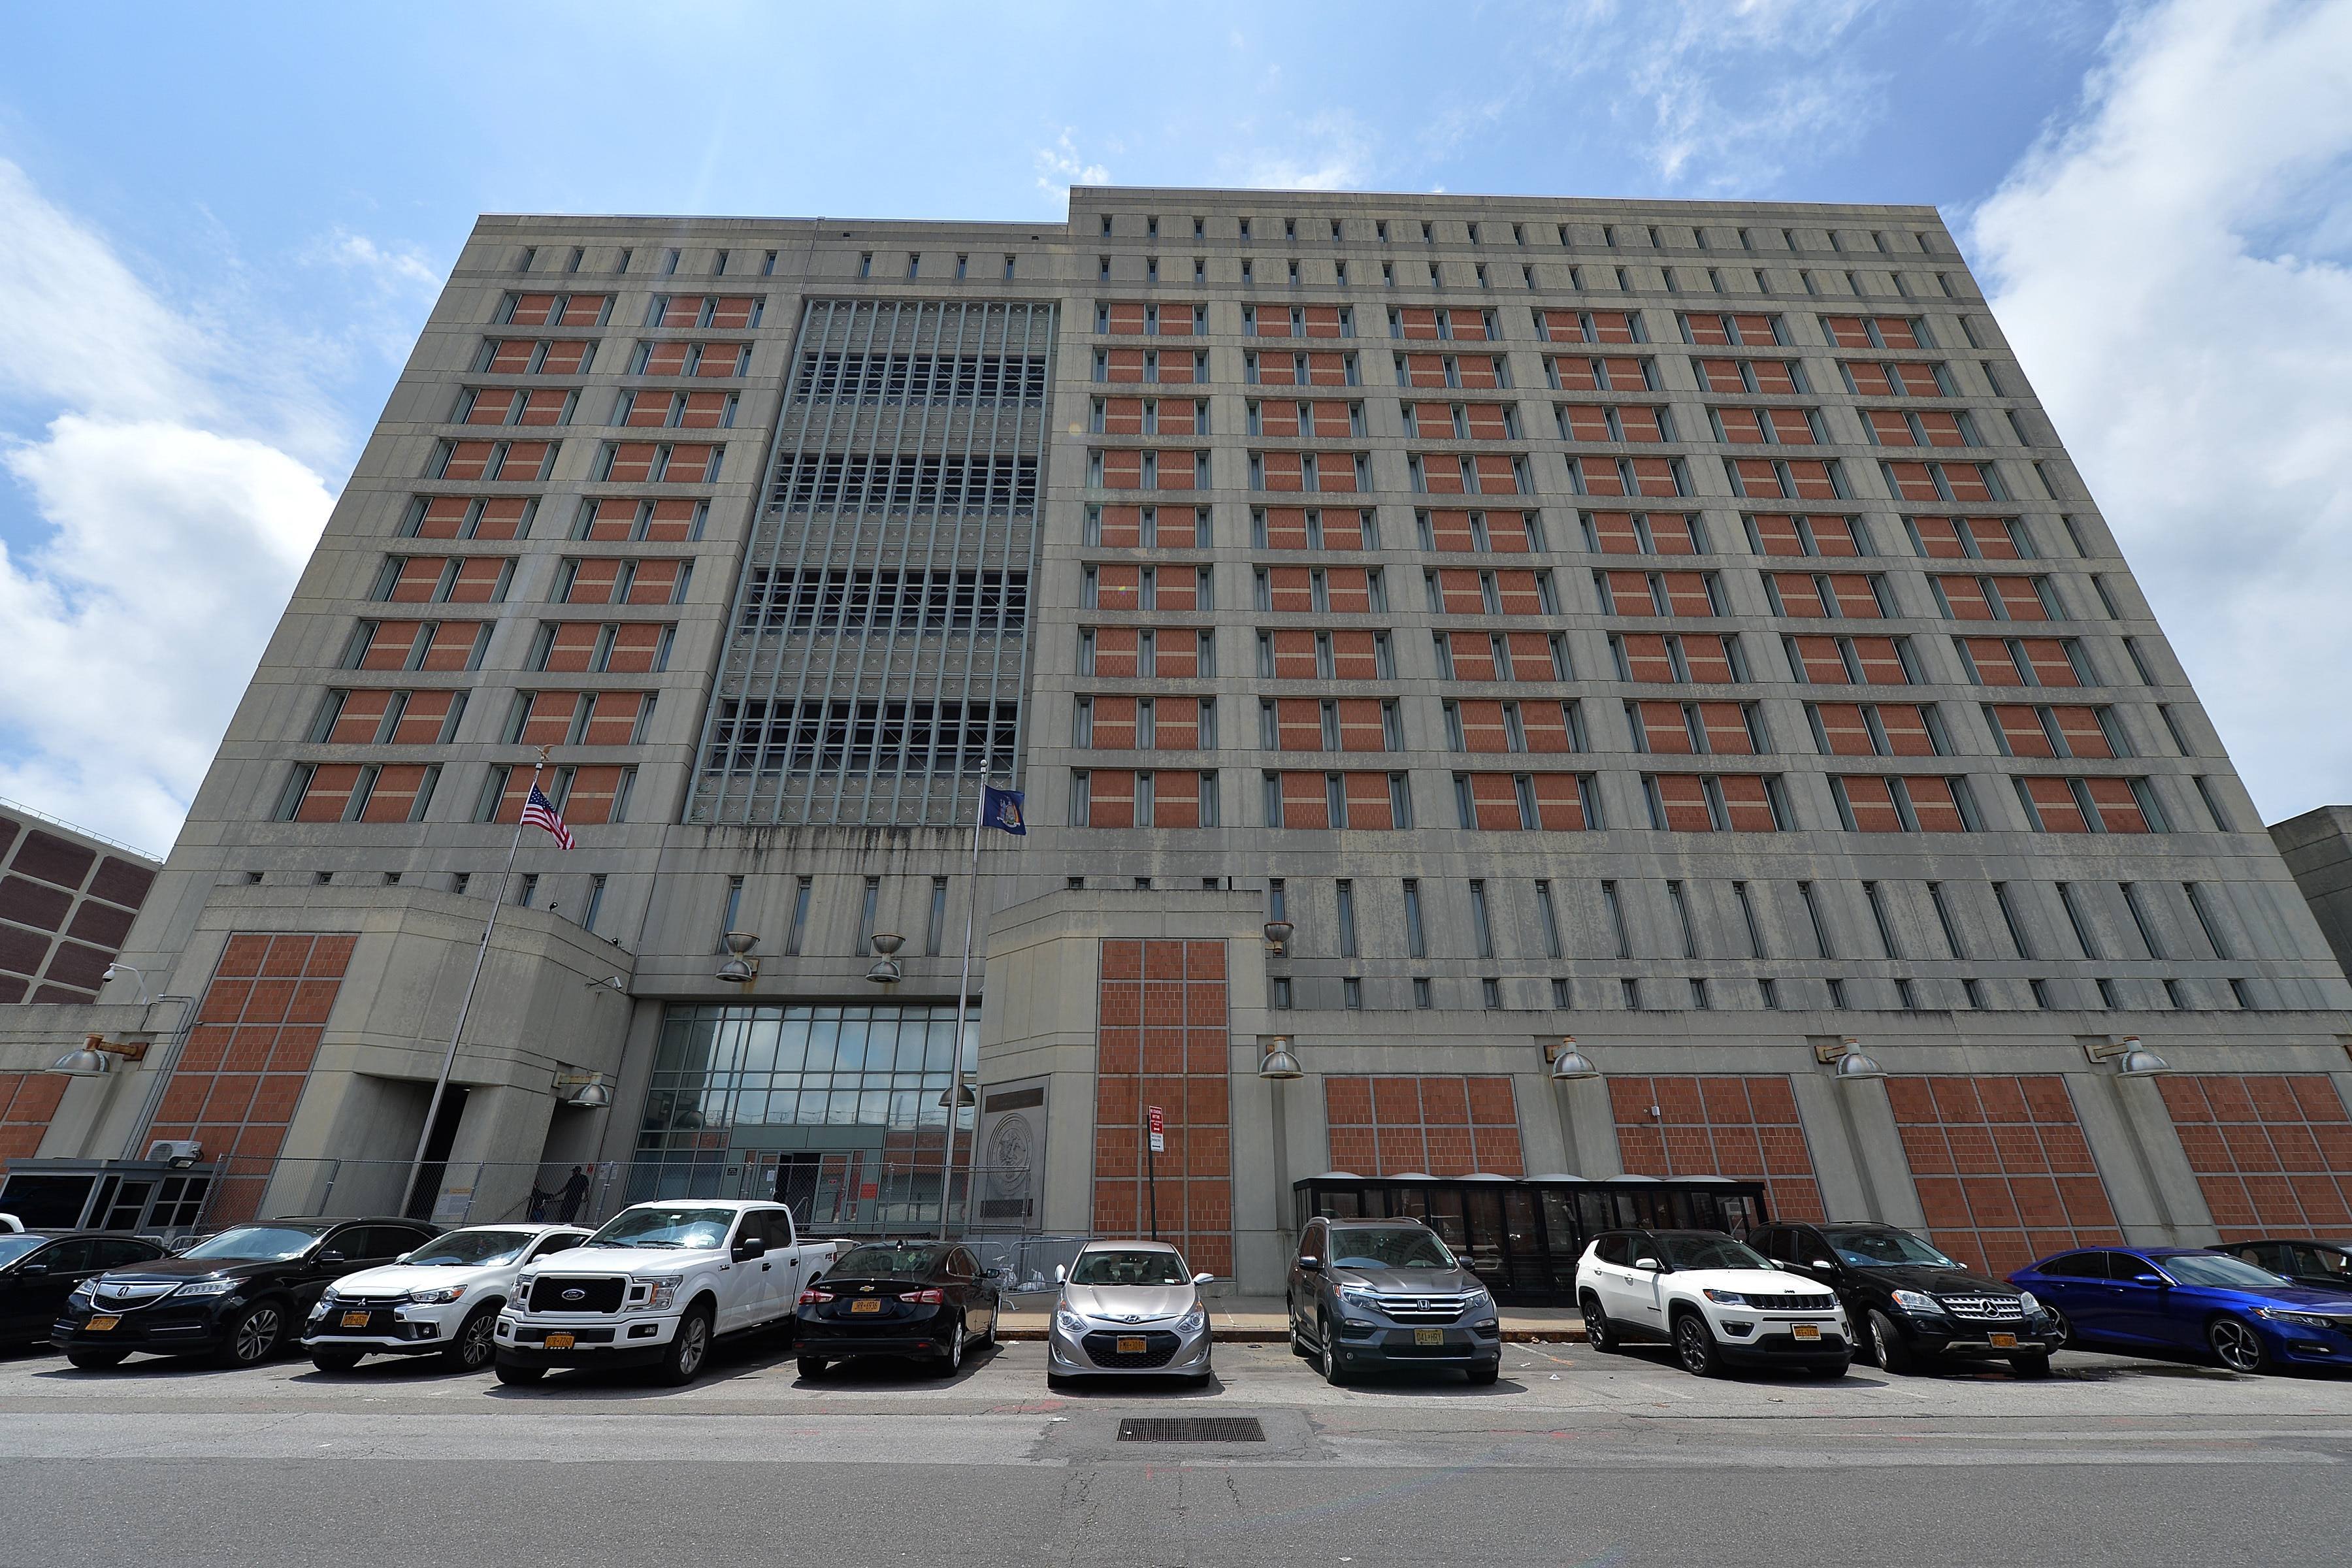 Outside view of Metropolitan Detention Center where Ghislaine Maxwell, former girlfriend of Jeffrey Epstein, was held after being arrested.